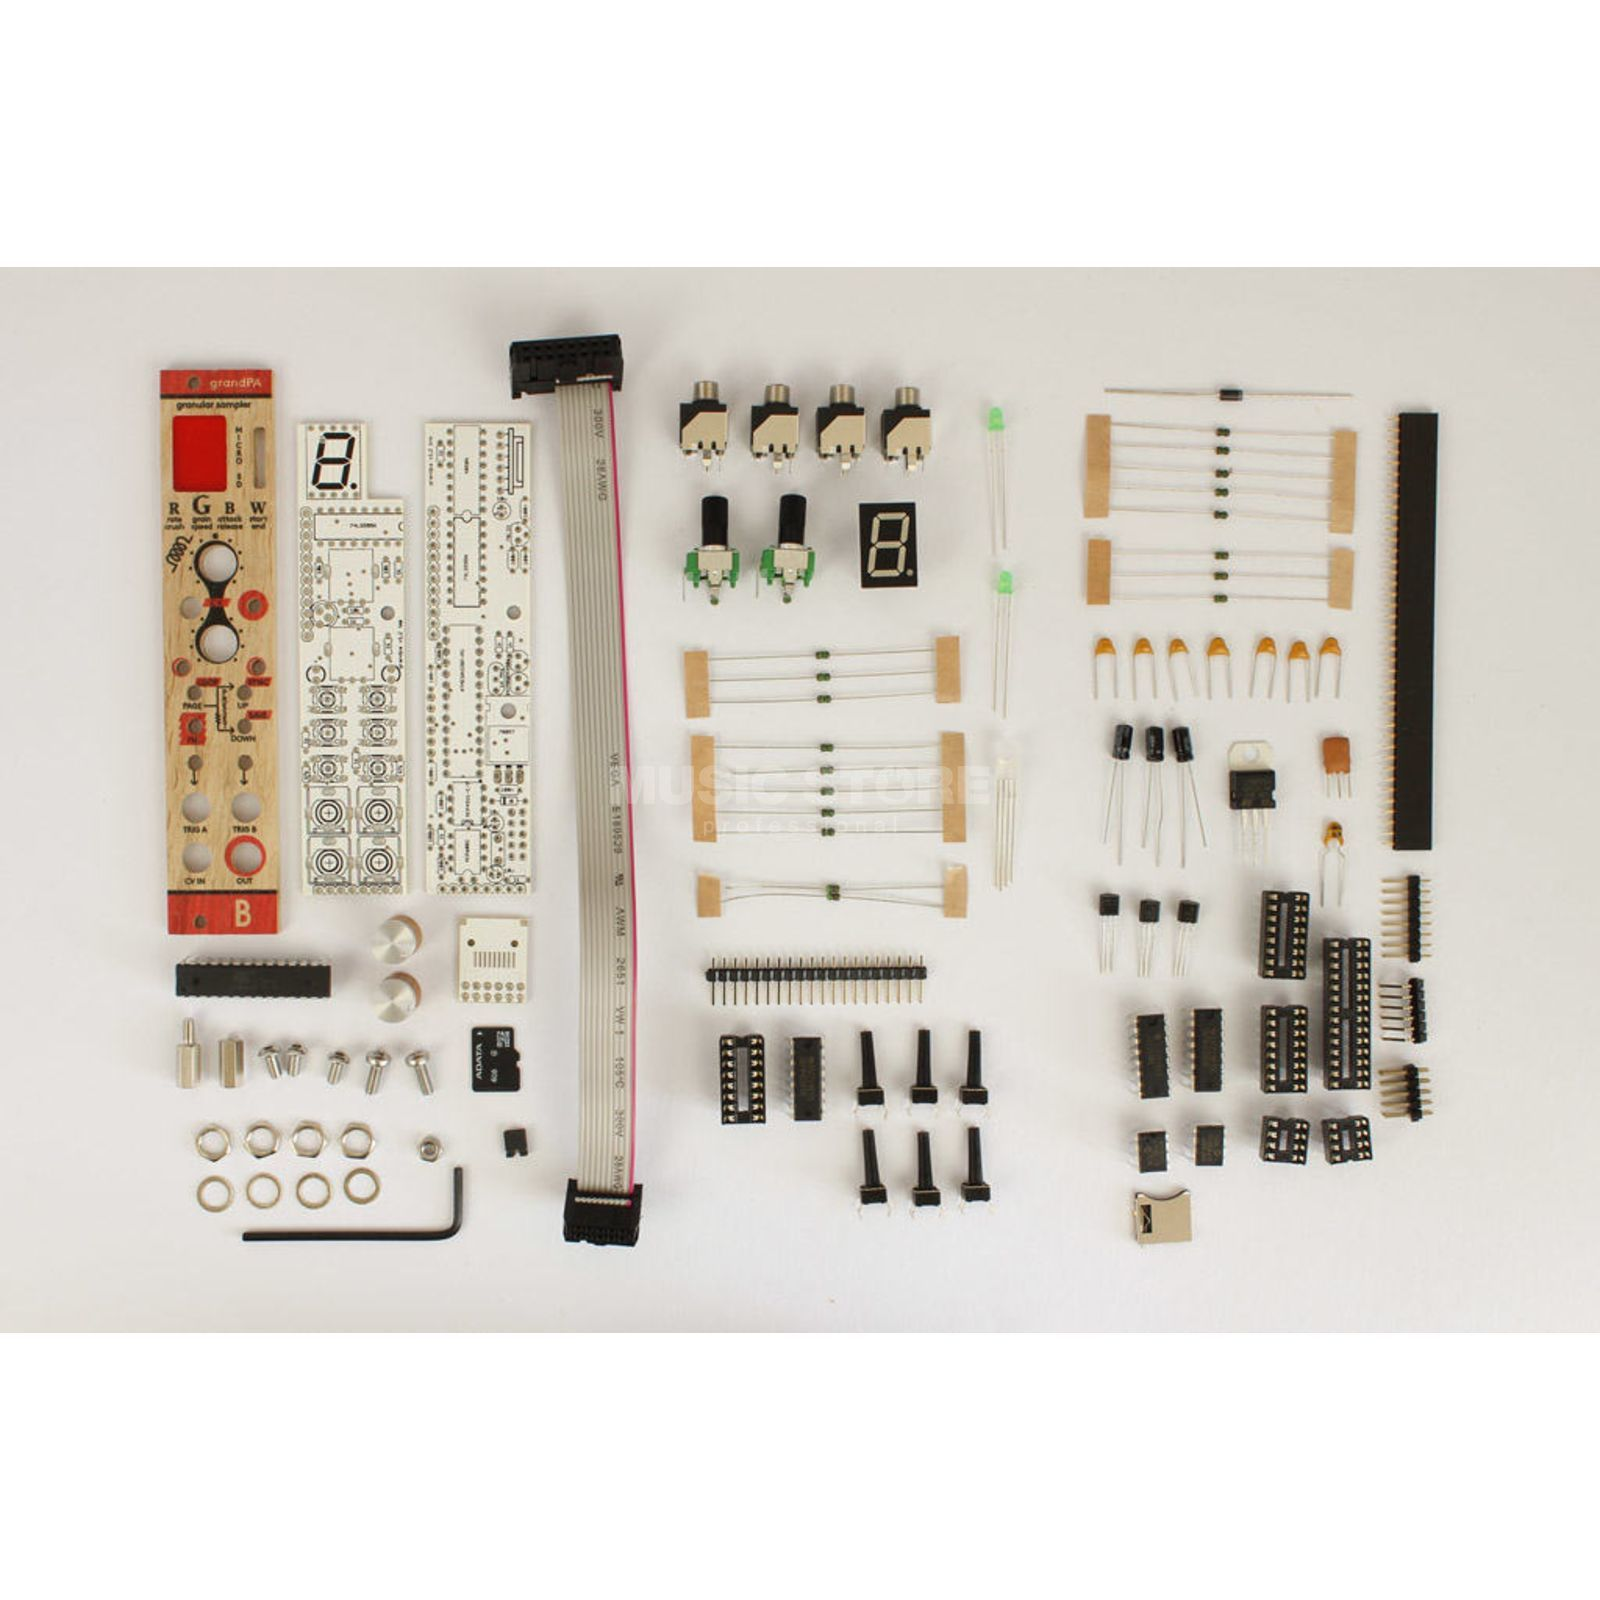 Bastl Instruments grandPa DIY KIT DIY granular sampler Product Image